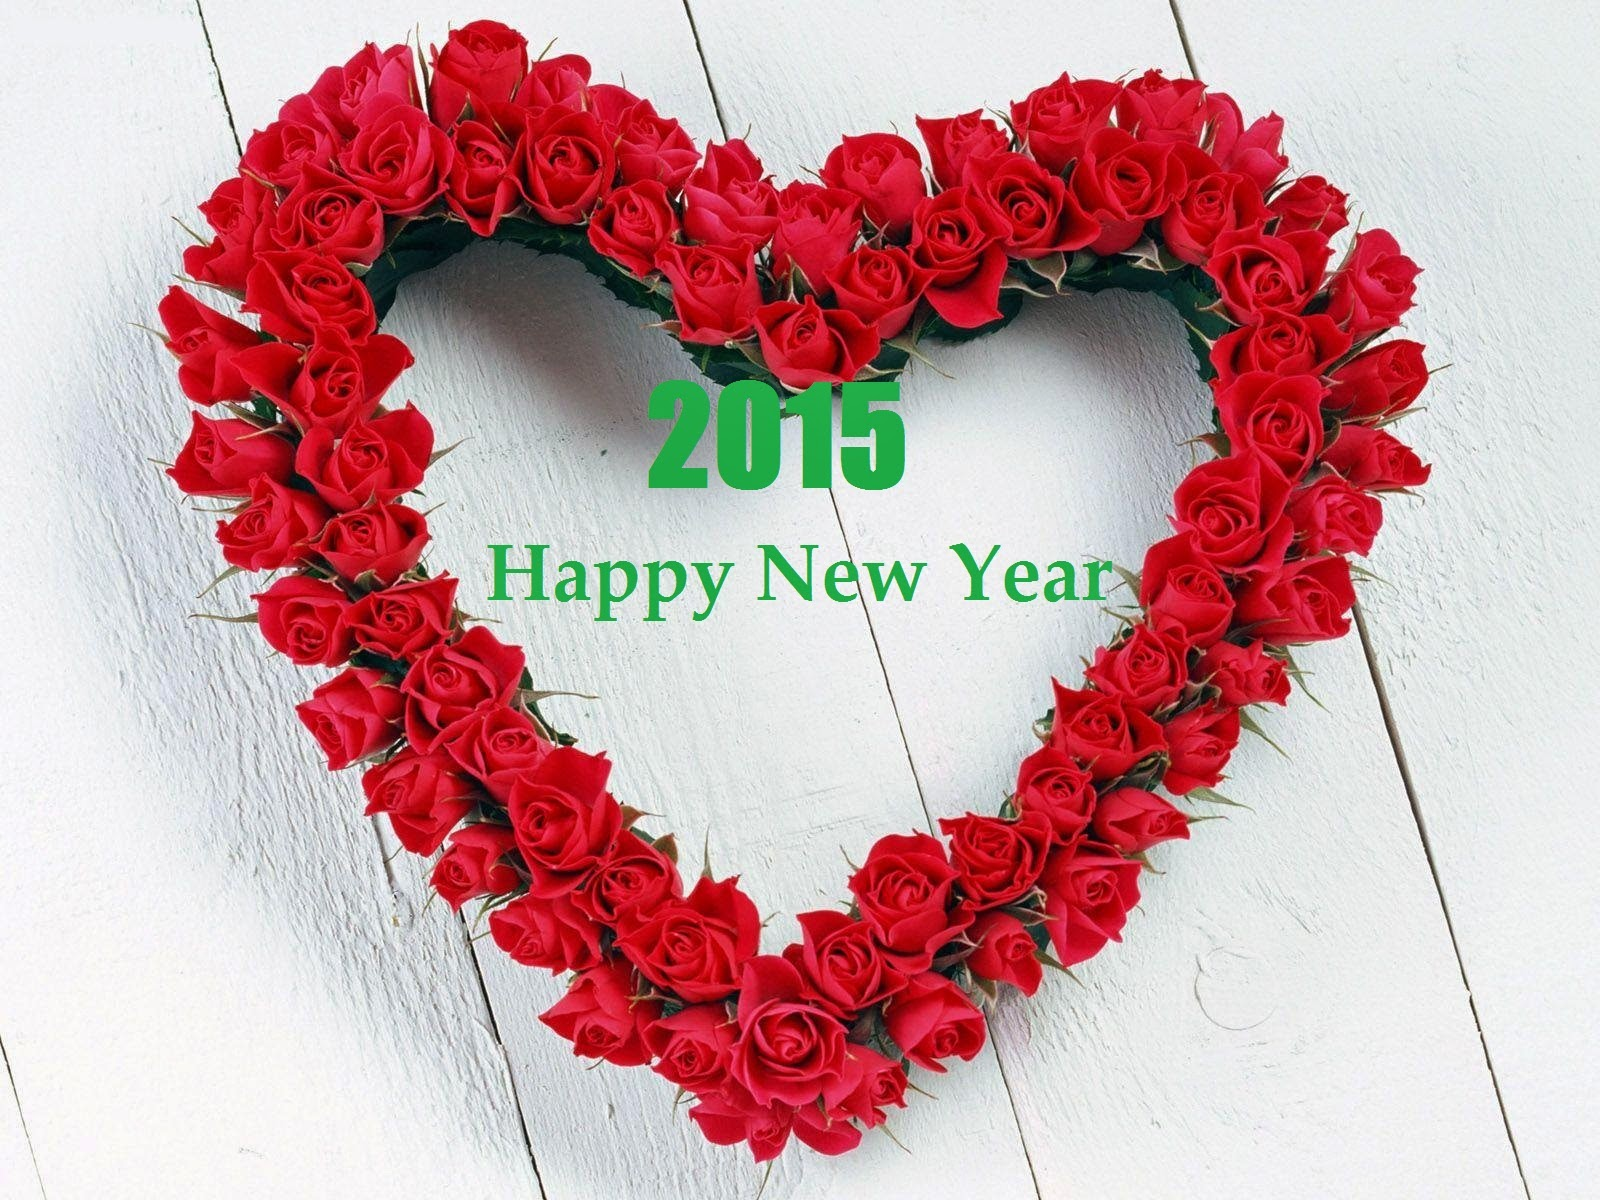 heart shape roses new year greetings latest wallpaper